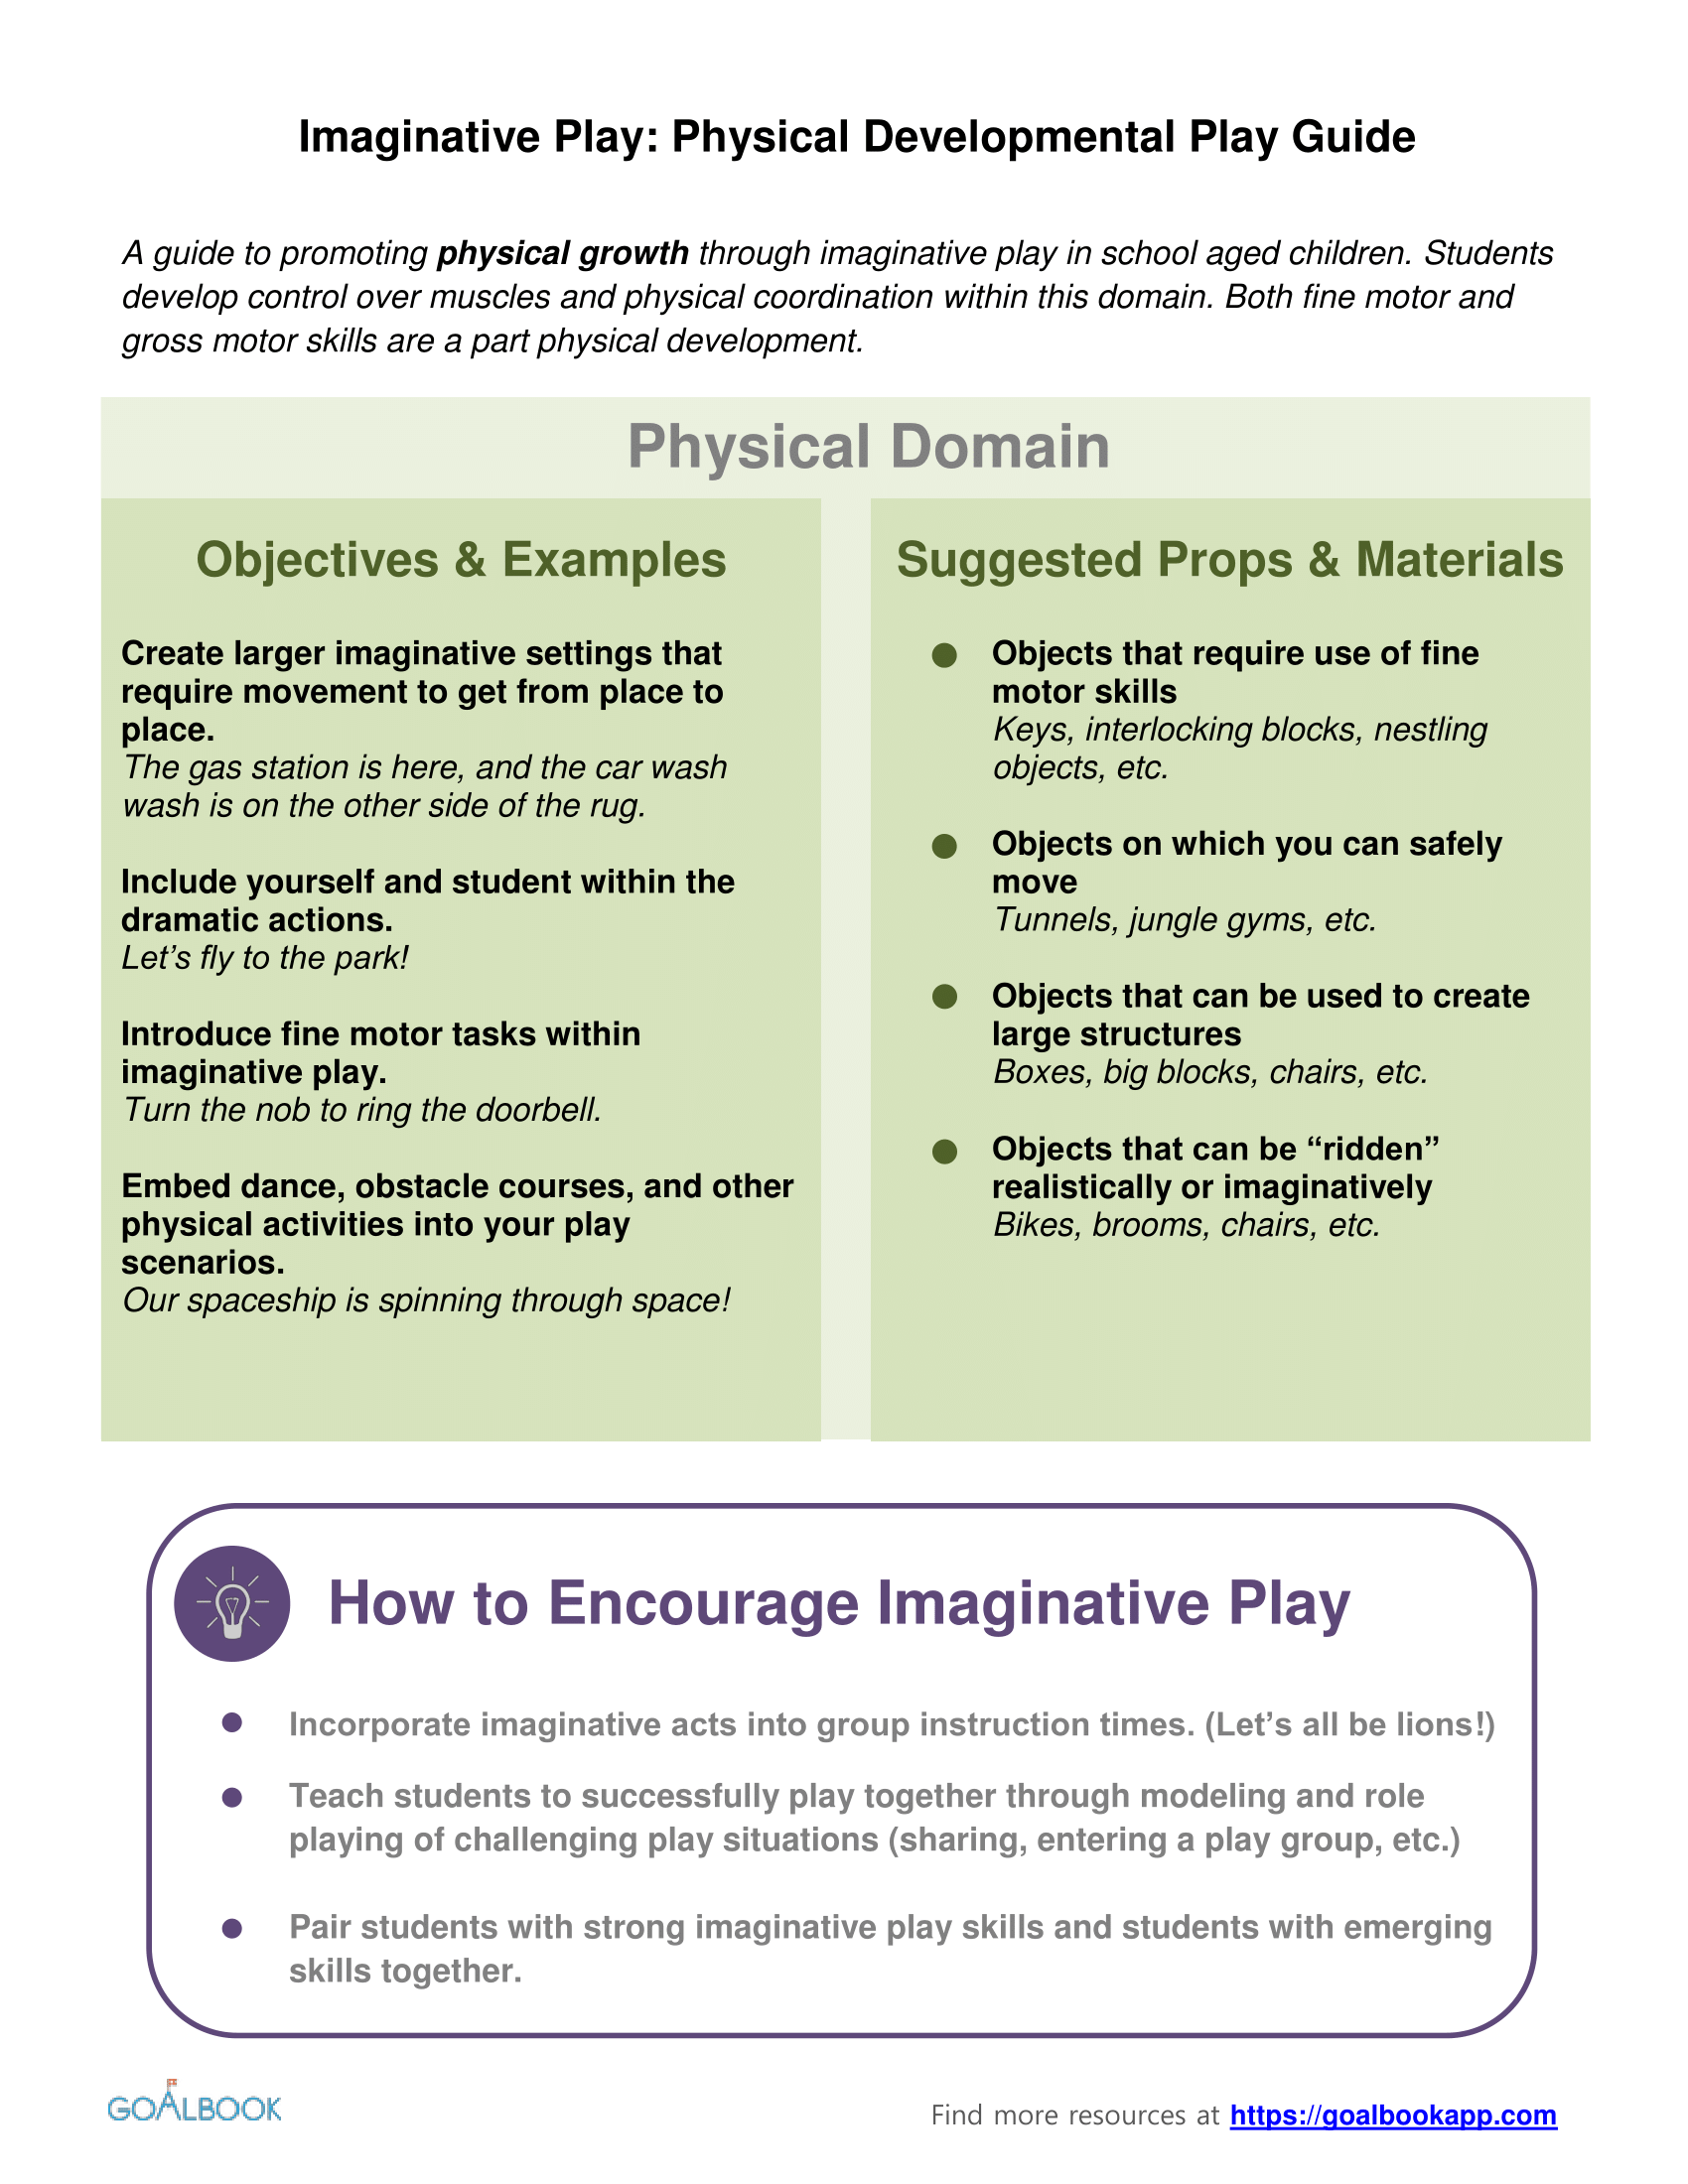 Physical Development Imaginative Play Guide